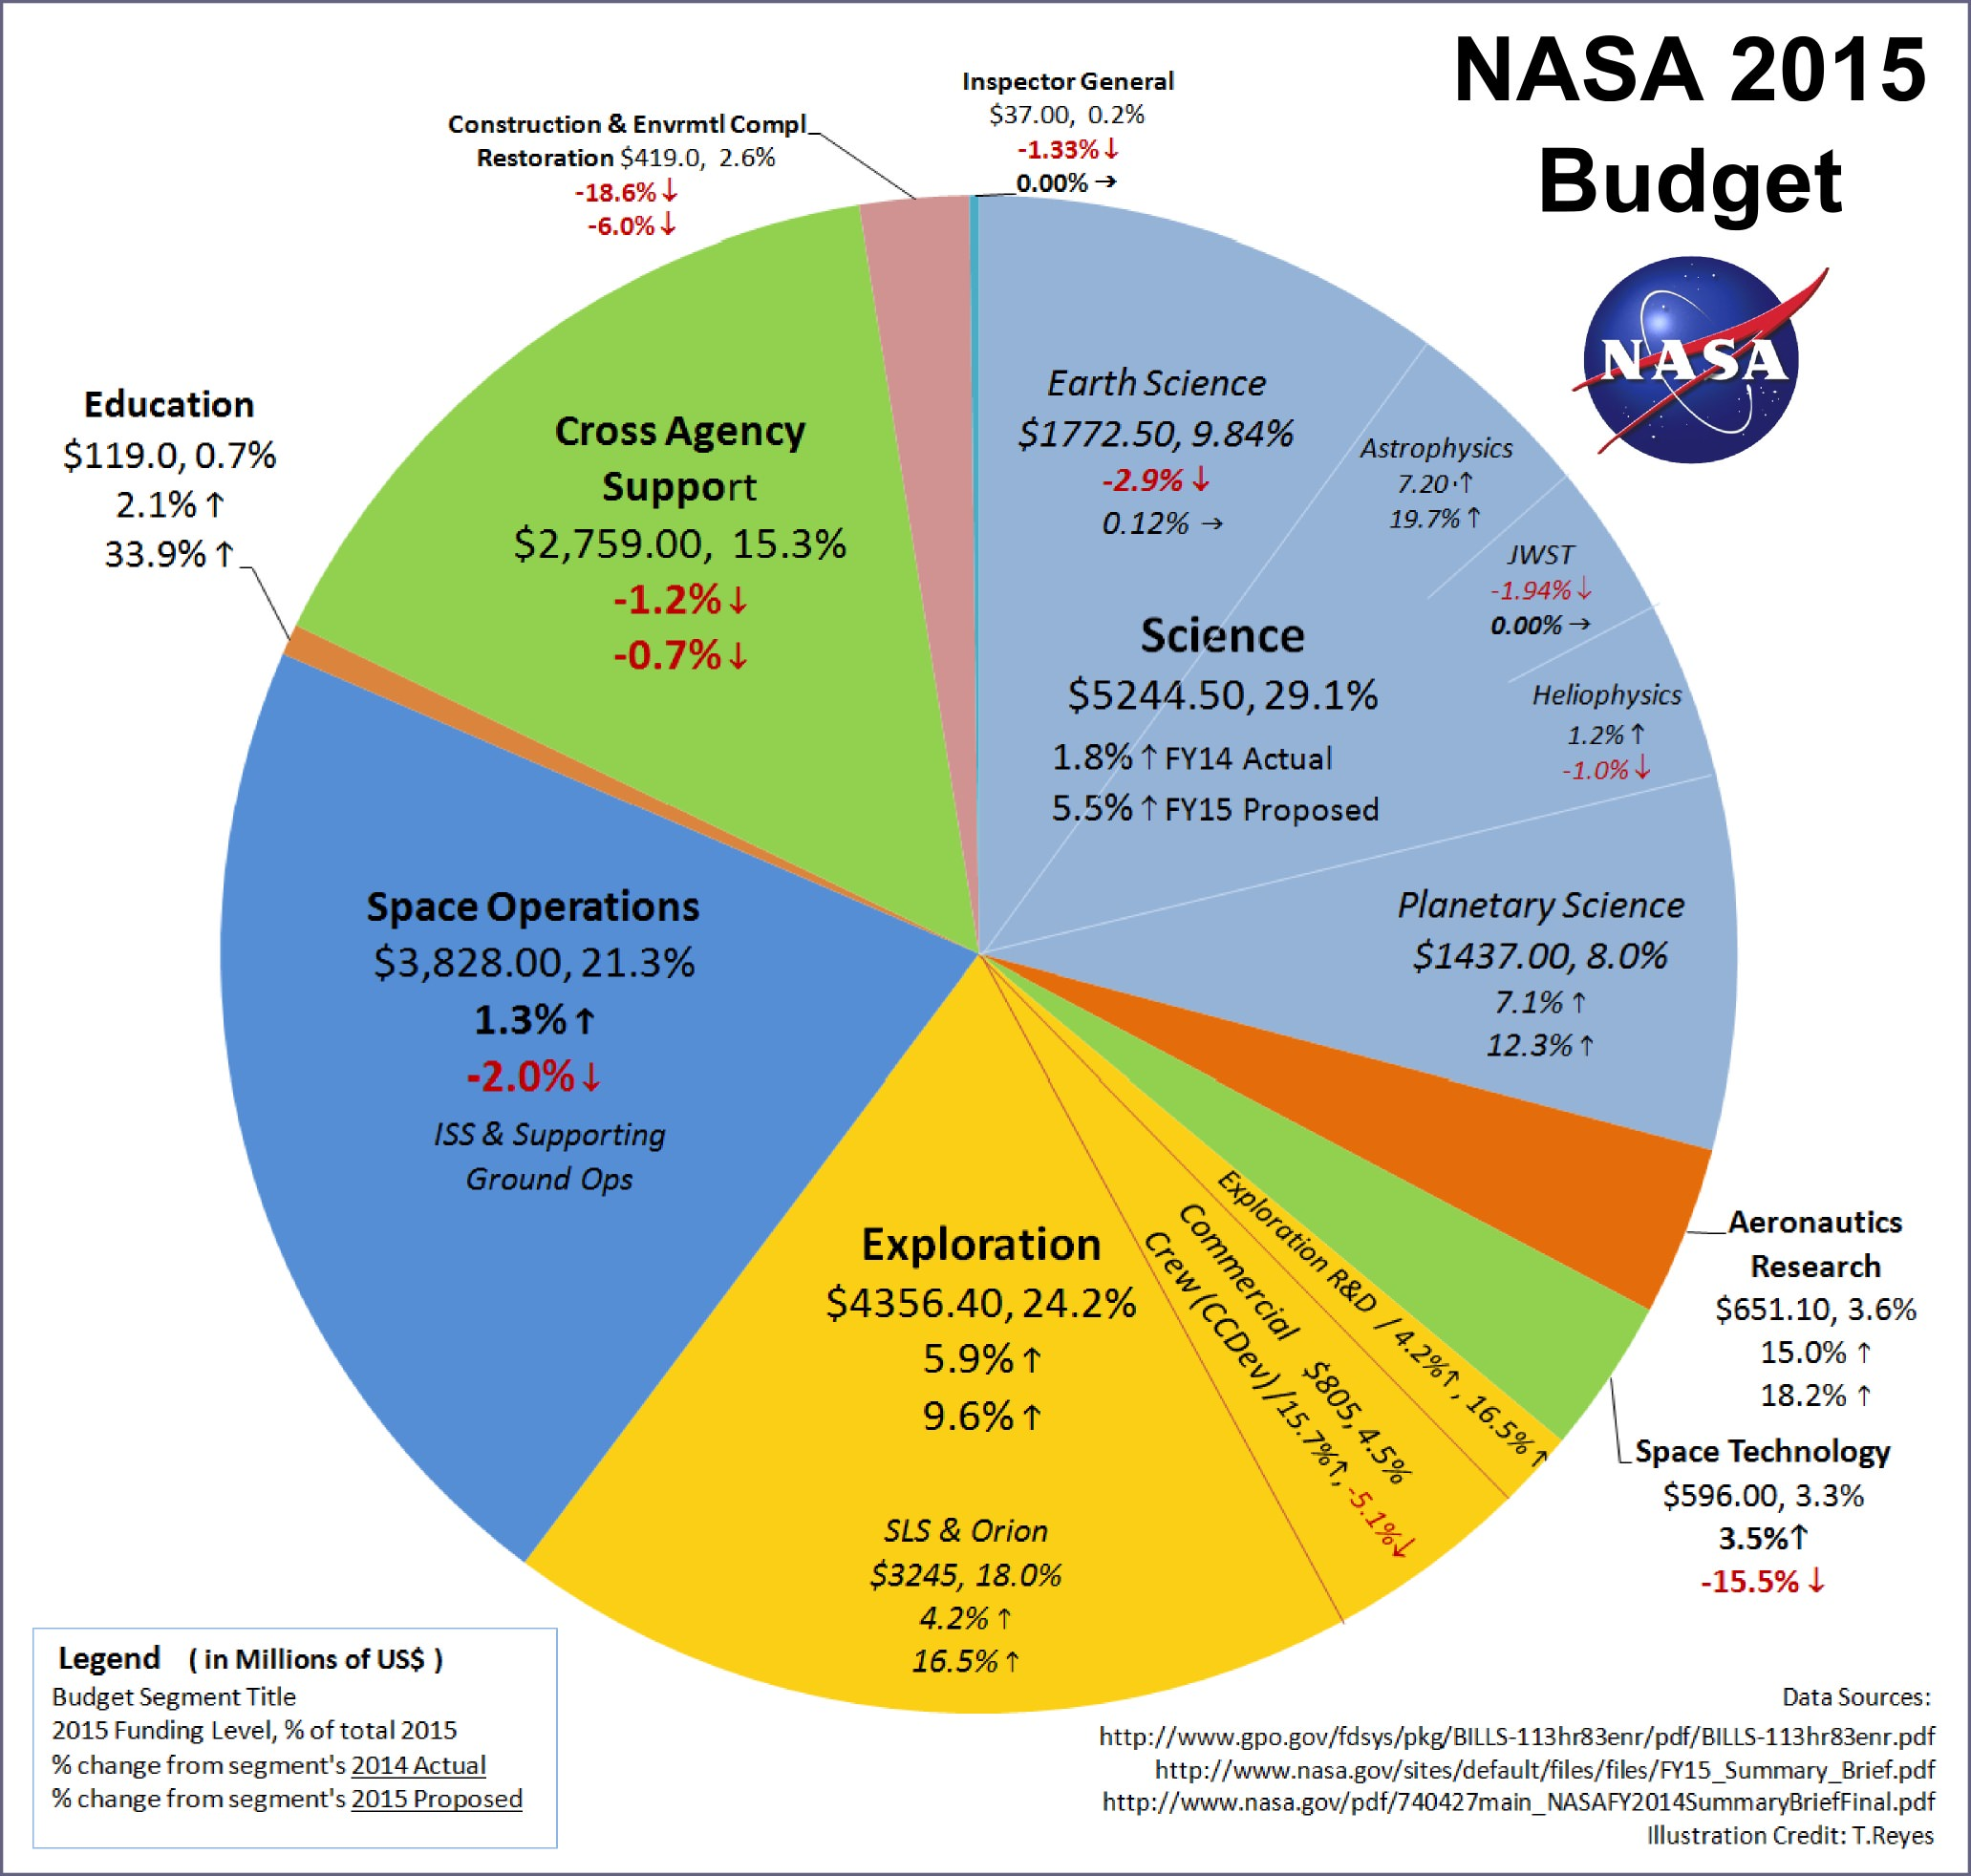 2014 us budget pie chart images free any chart examples 2014 us budget pie chart gallery free any chart examples 2014 us budget pie chart choice nvjuhfo Image collections